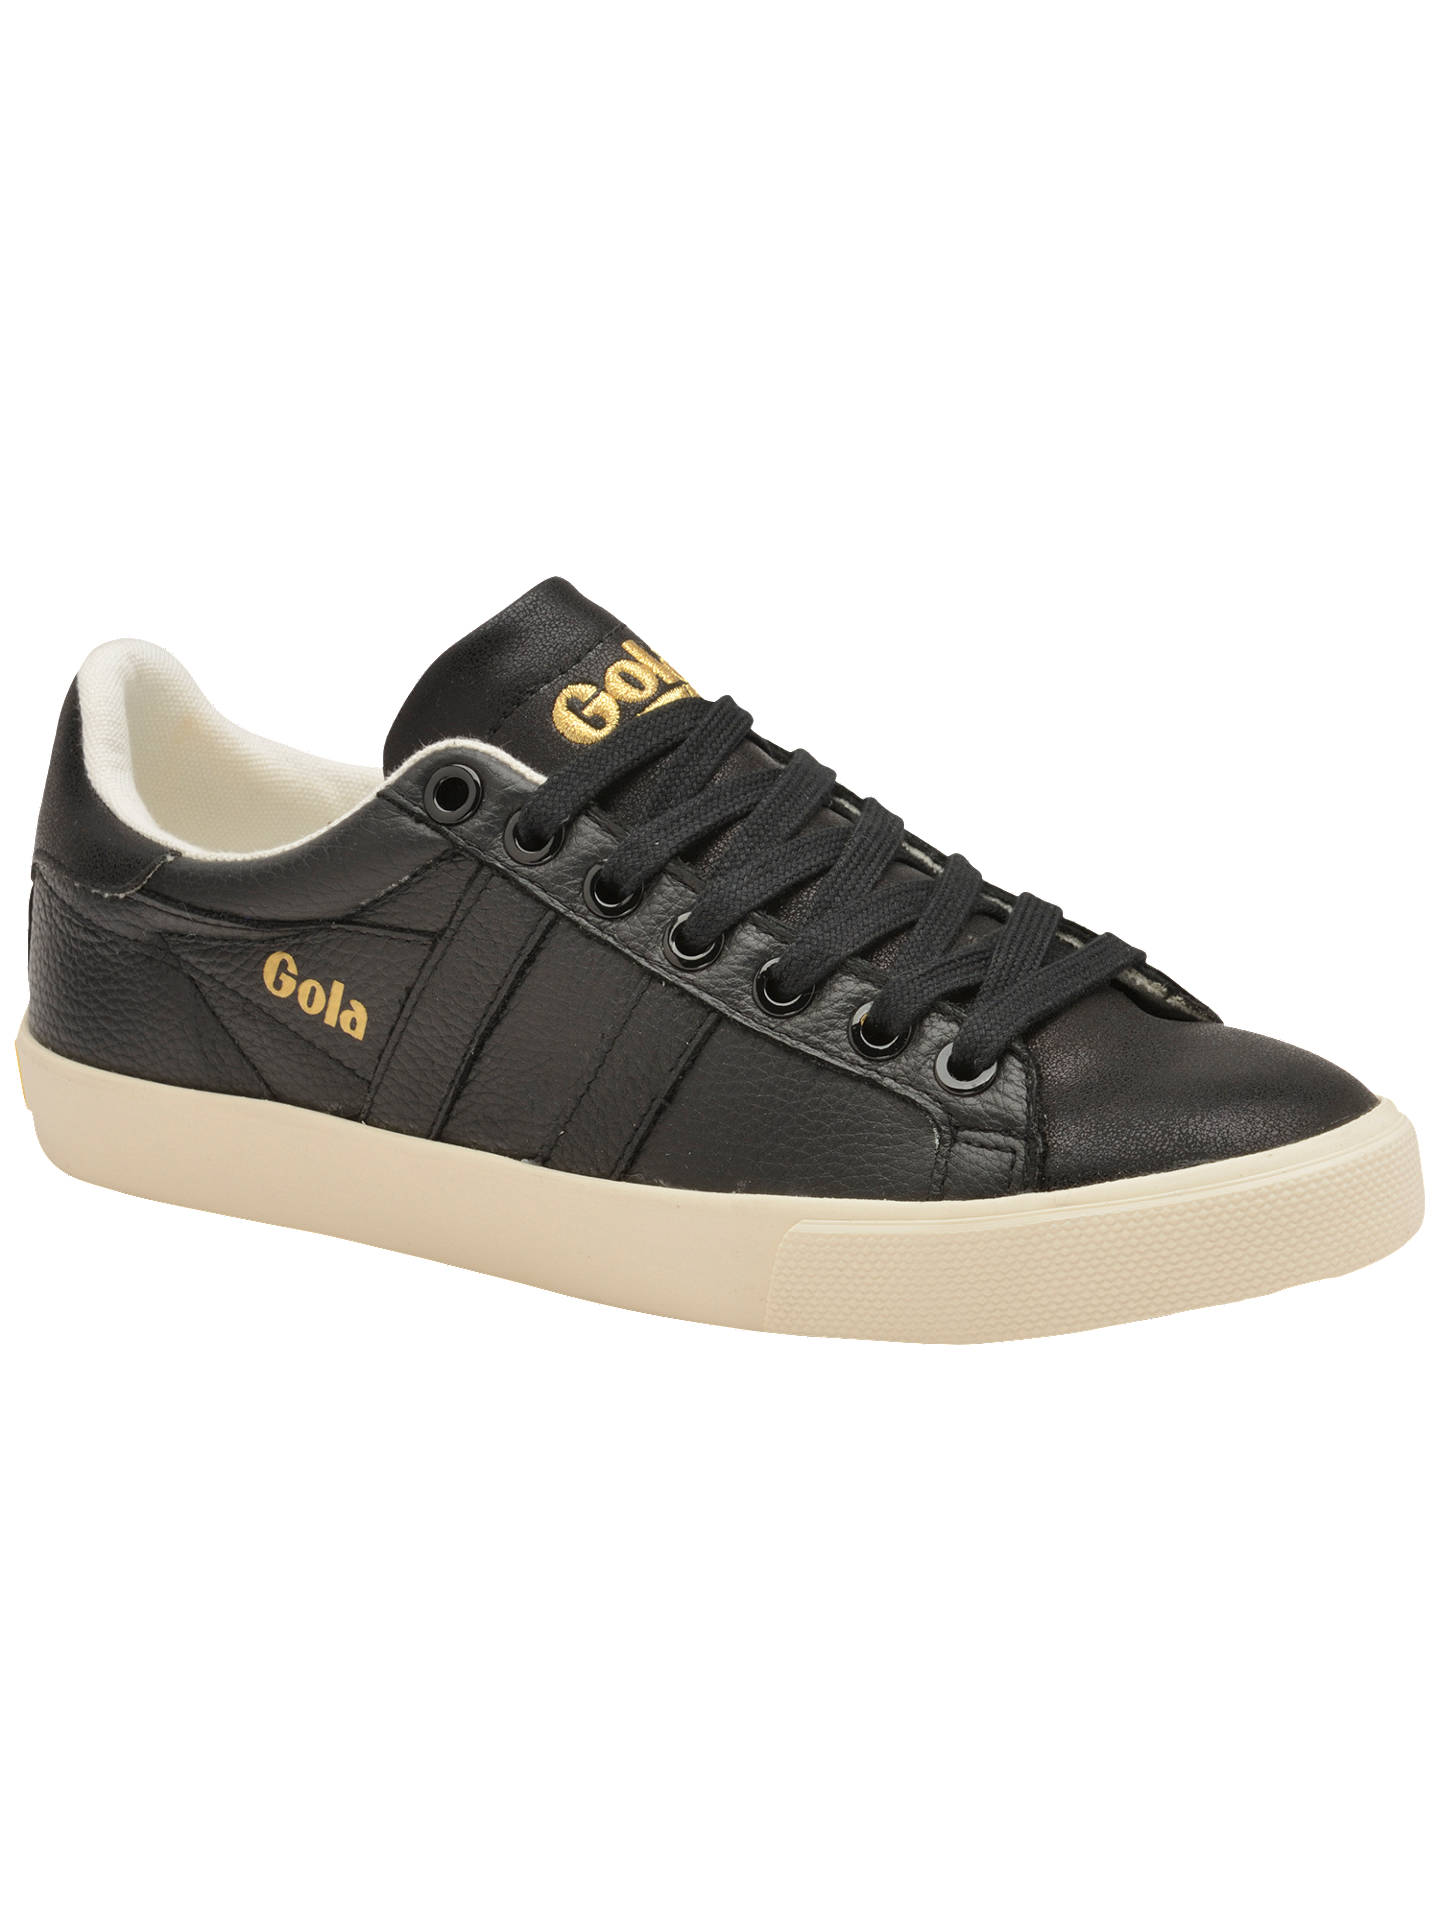 1c9538b74c4 Buy Gola Orchid Shimmer Lace Up Trainers, Black Leather, 3 Online at  johnlewis.